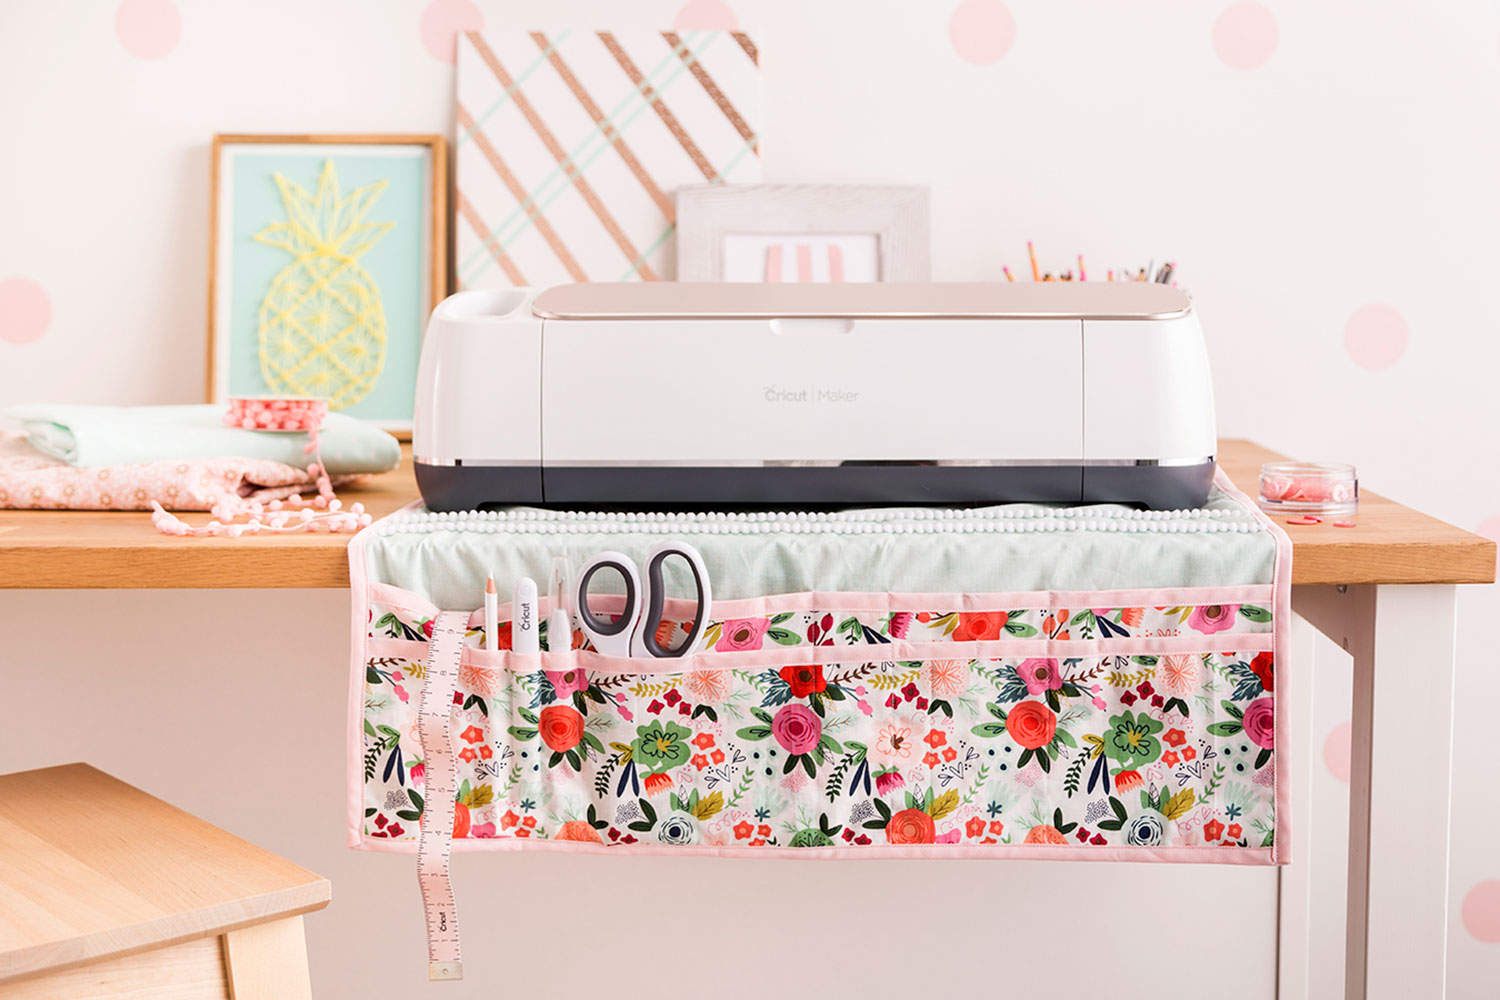 cricut maker deals